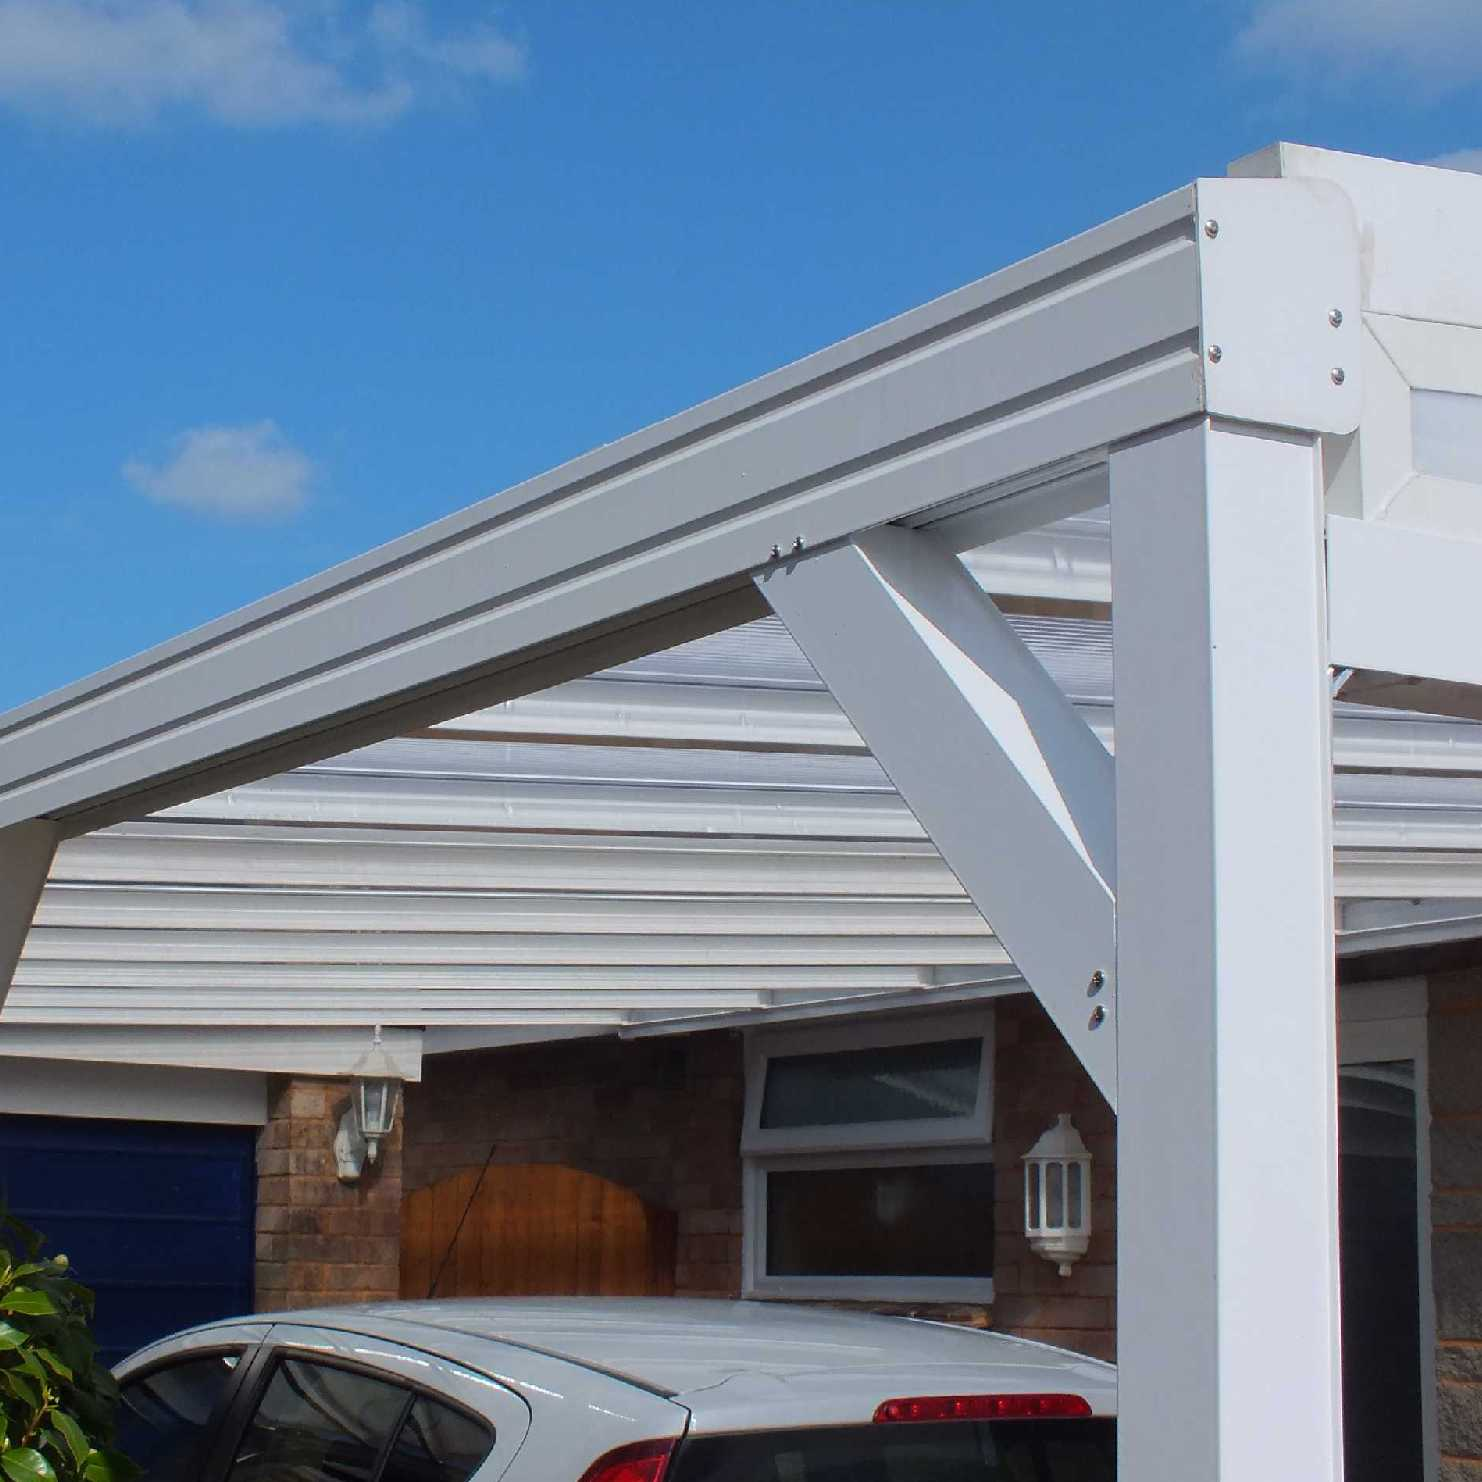 Great deals on Omega Smart Lean-To Canopy with 16mm Polycarbonate Glazing - 10.6m (W) x 3.5m (P), (5) Supporting Posts